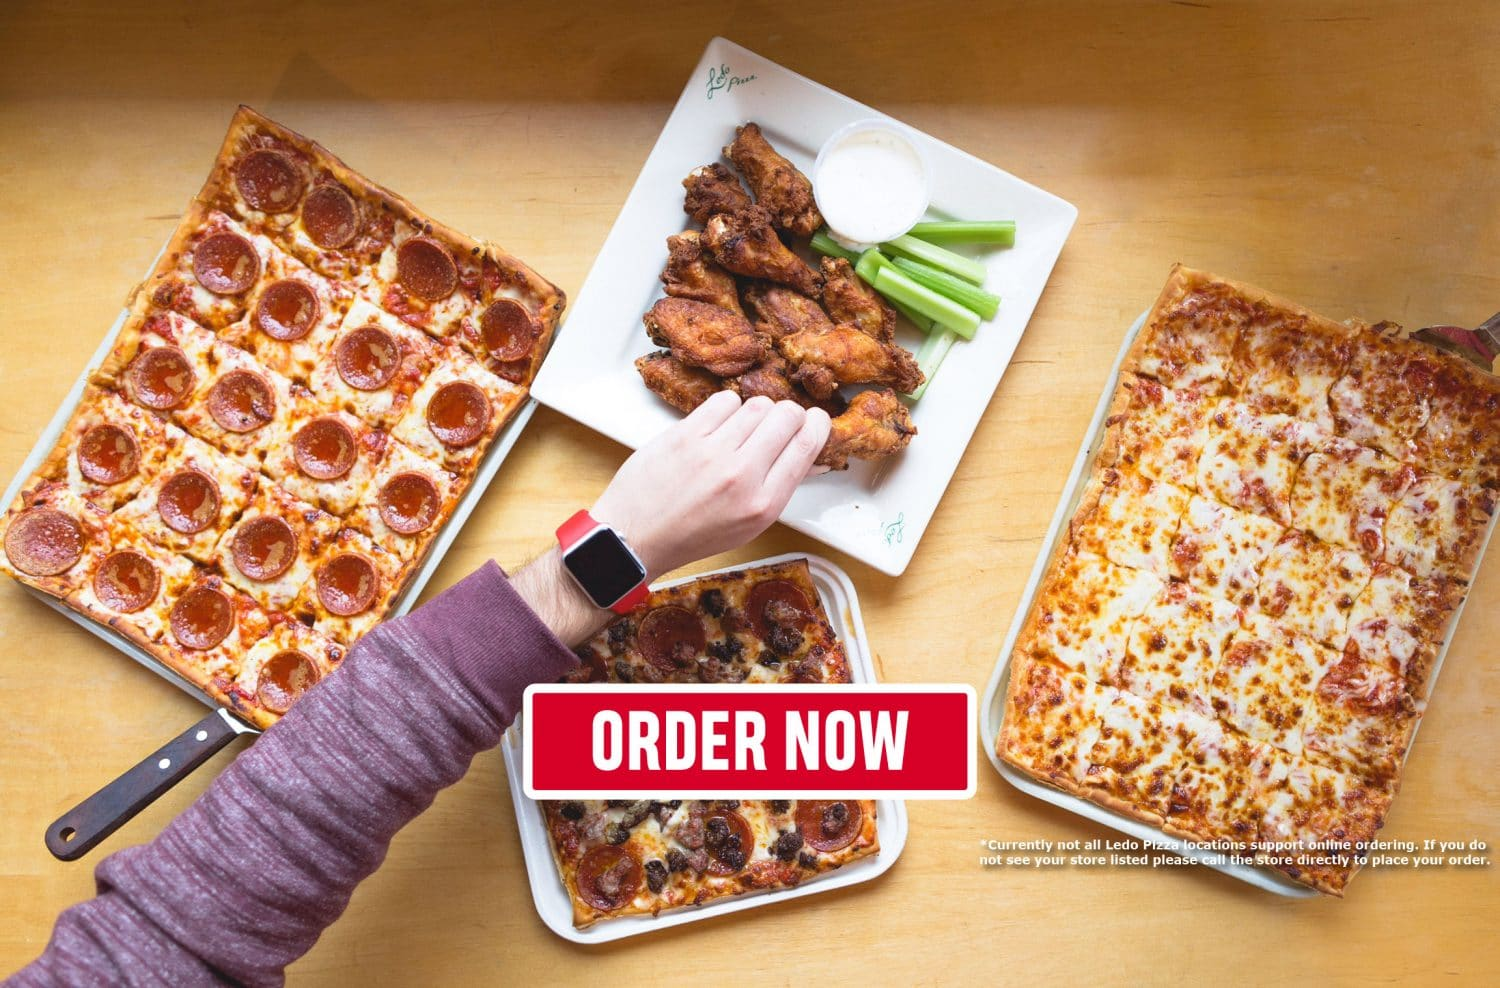 Ledo Pizza | Jumbo Wings, Pizza, and Salads | Pizza Near Me